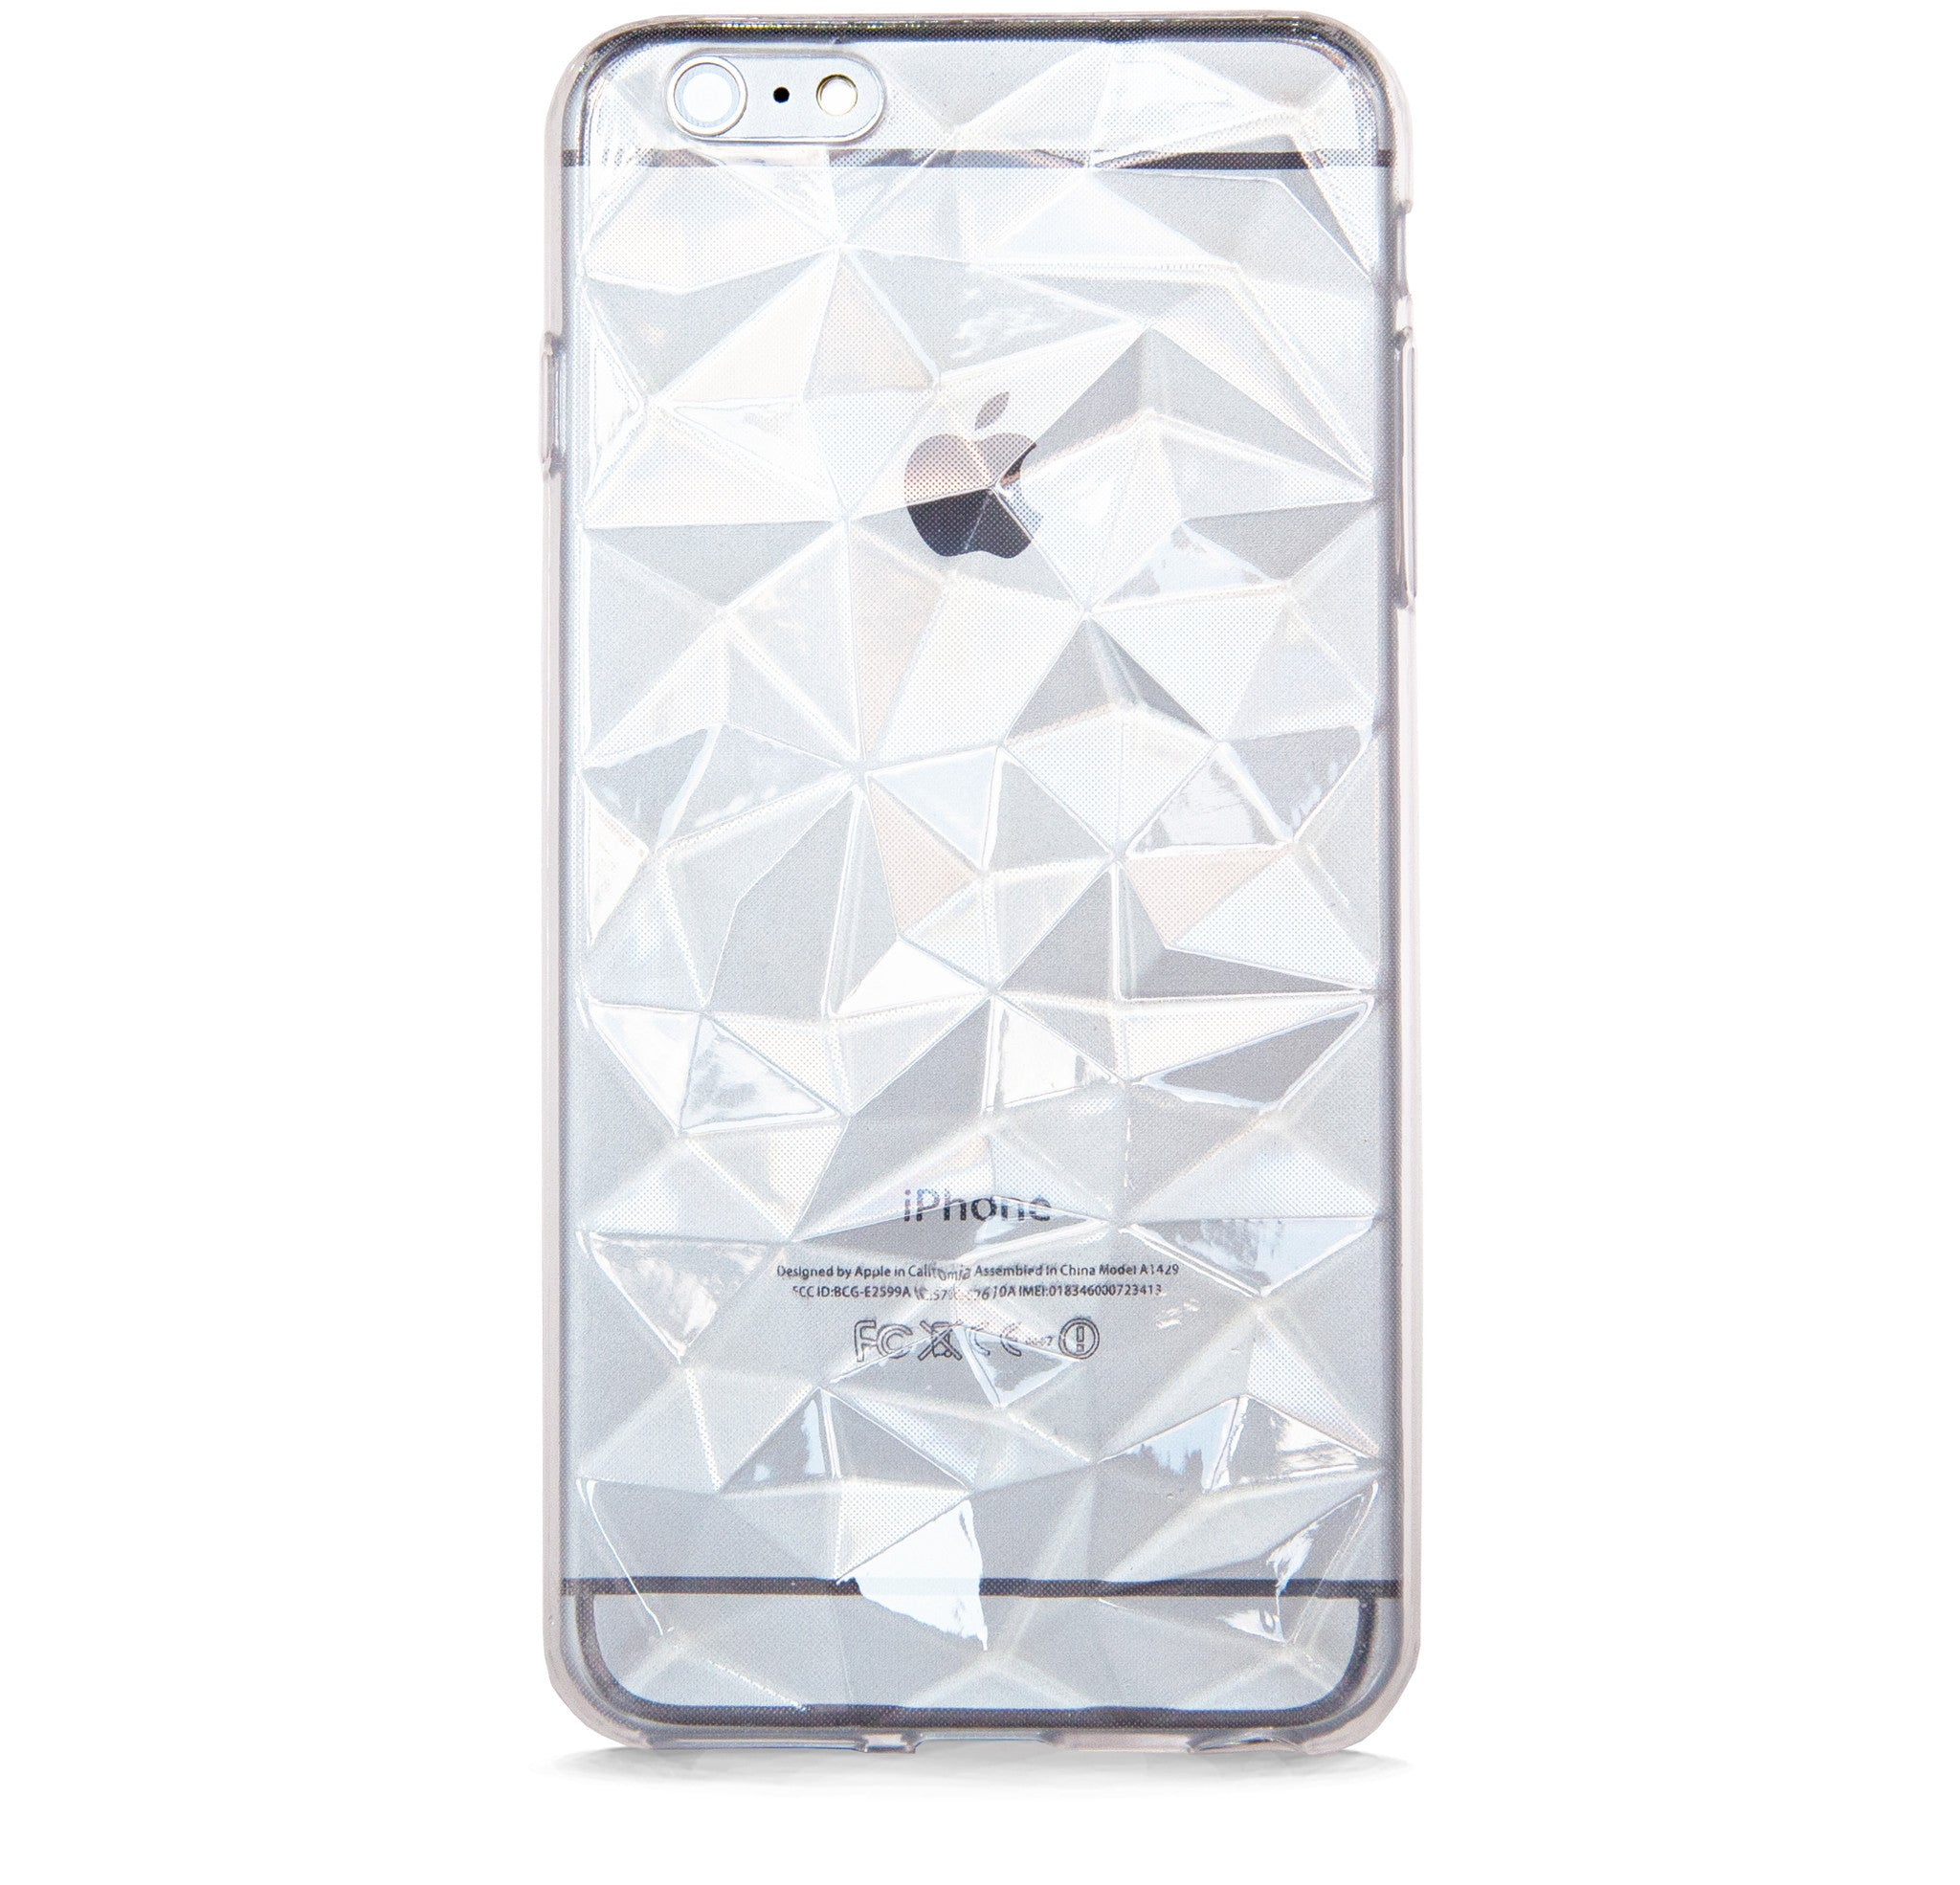 *IPHONE 6/6S PLUS MULTI FACETED CLEAR RUBBER CASE